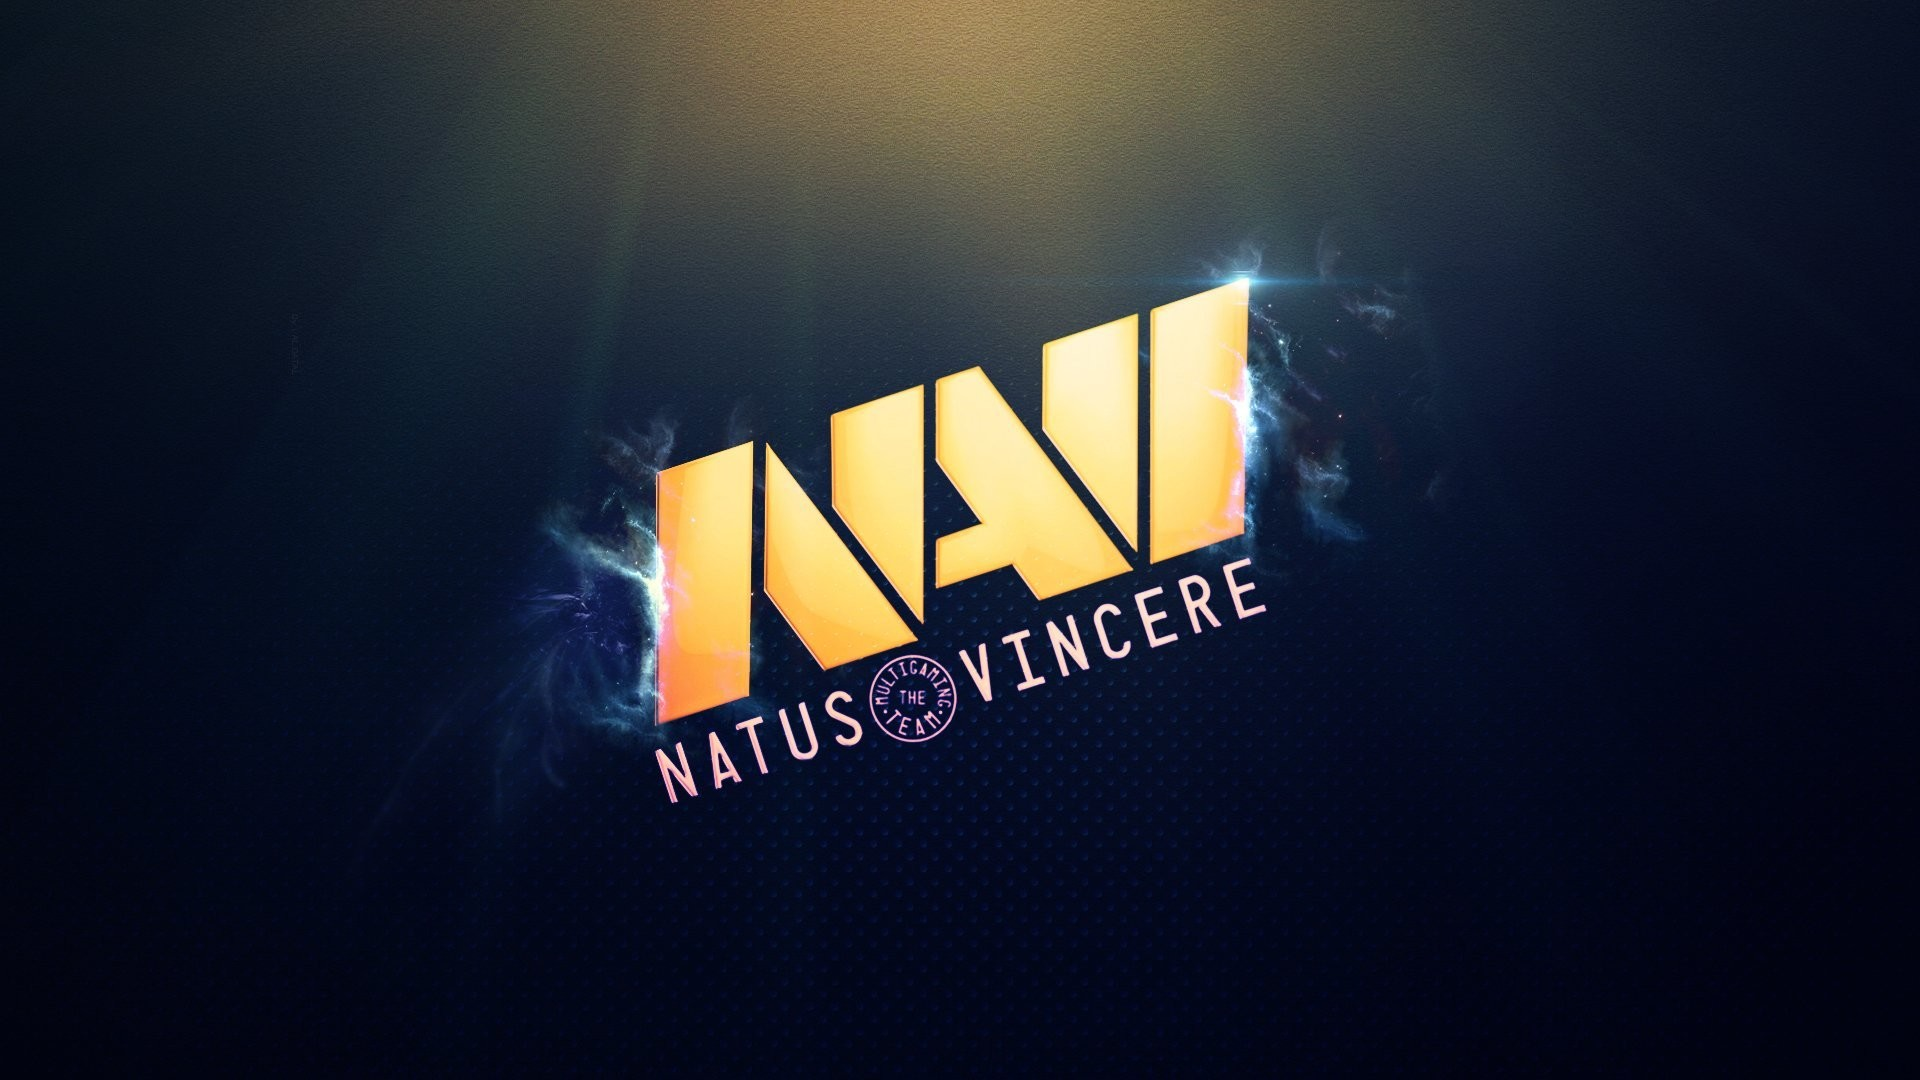 1920x1080 logo na`vi team minimalism game cs:go